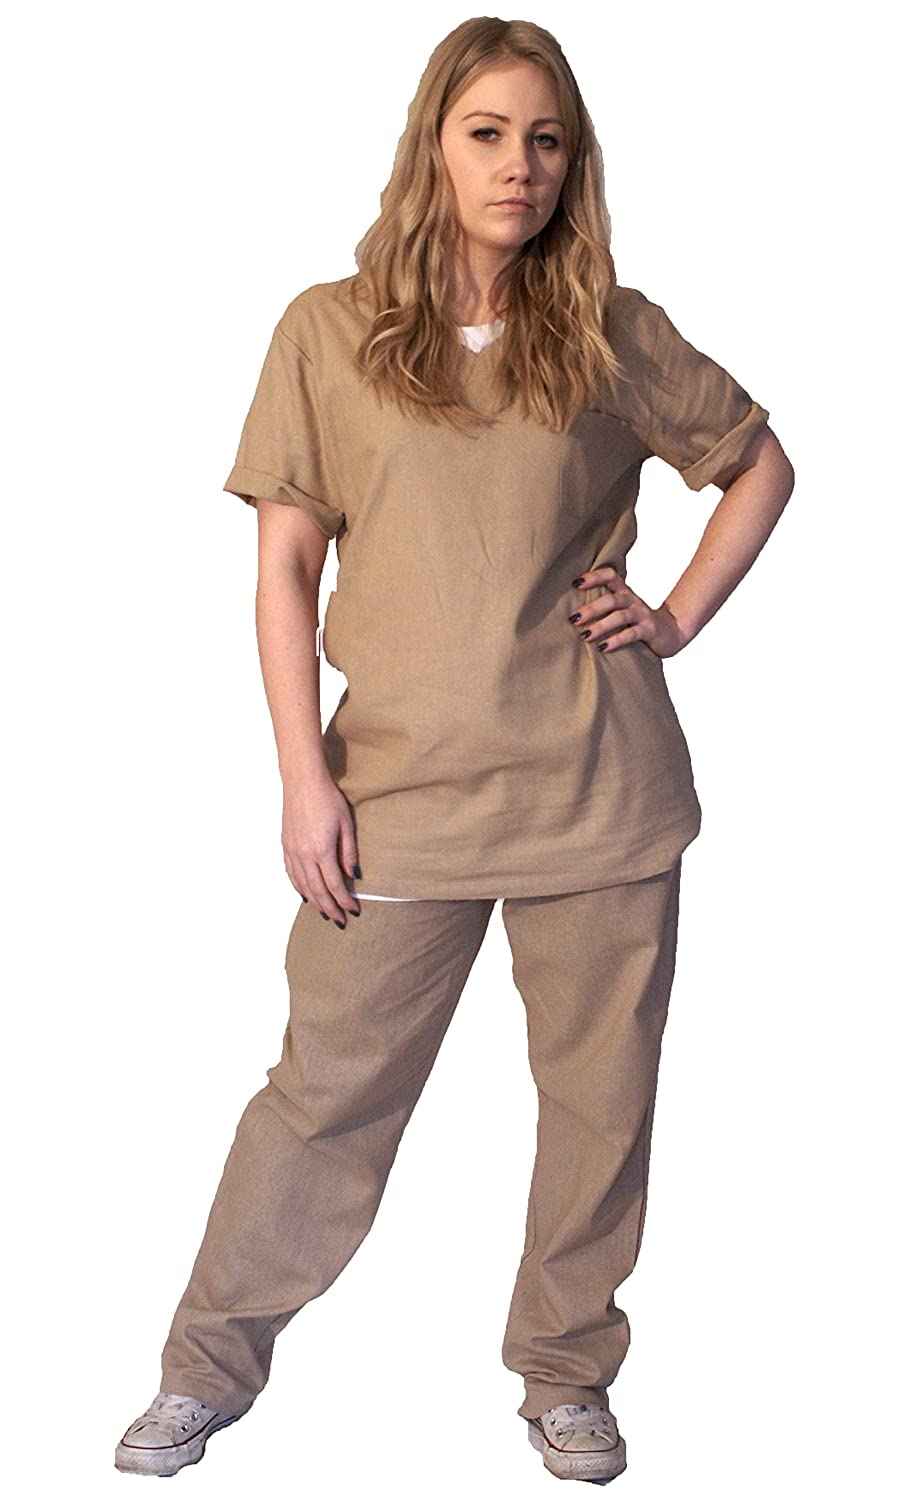 Amazon.com The Cosplay Company Orange or Beige Ladies Prison Suit (Large/beige) Clothing  sc 1 st  Amazon.com & Amazon.com: The Cosplay Company Orange or Beige Ladies Prison Suit ...